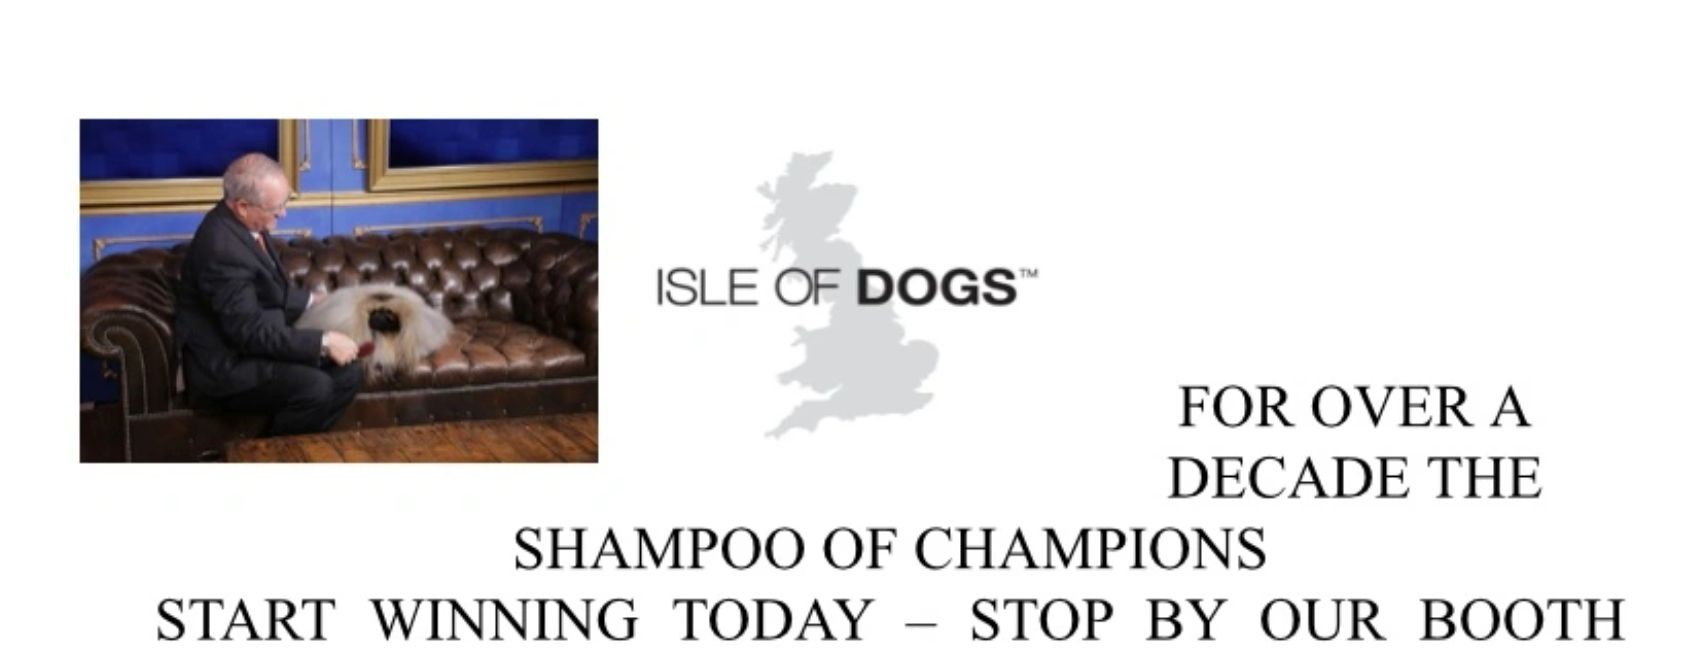 Isle of Dogs grooming products